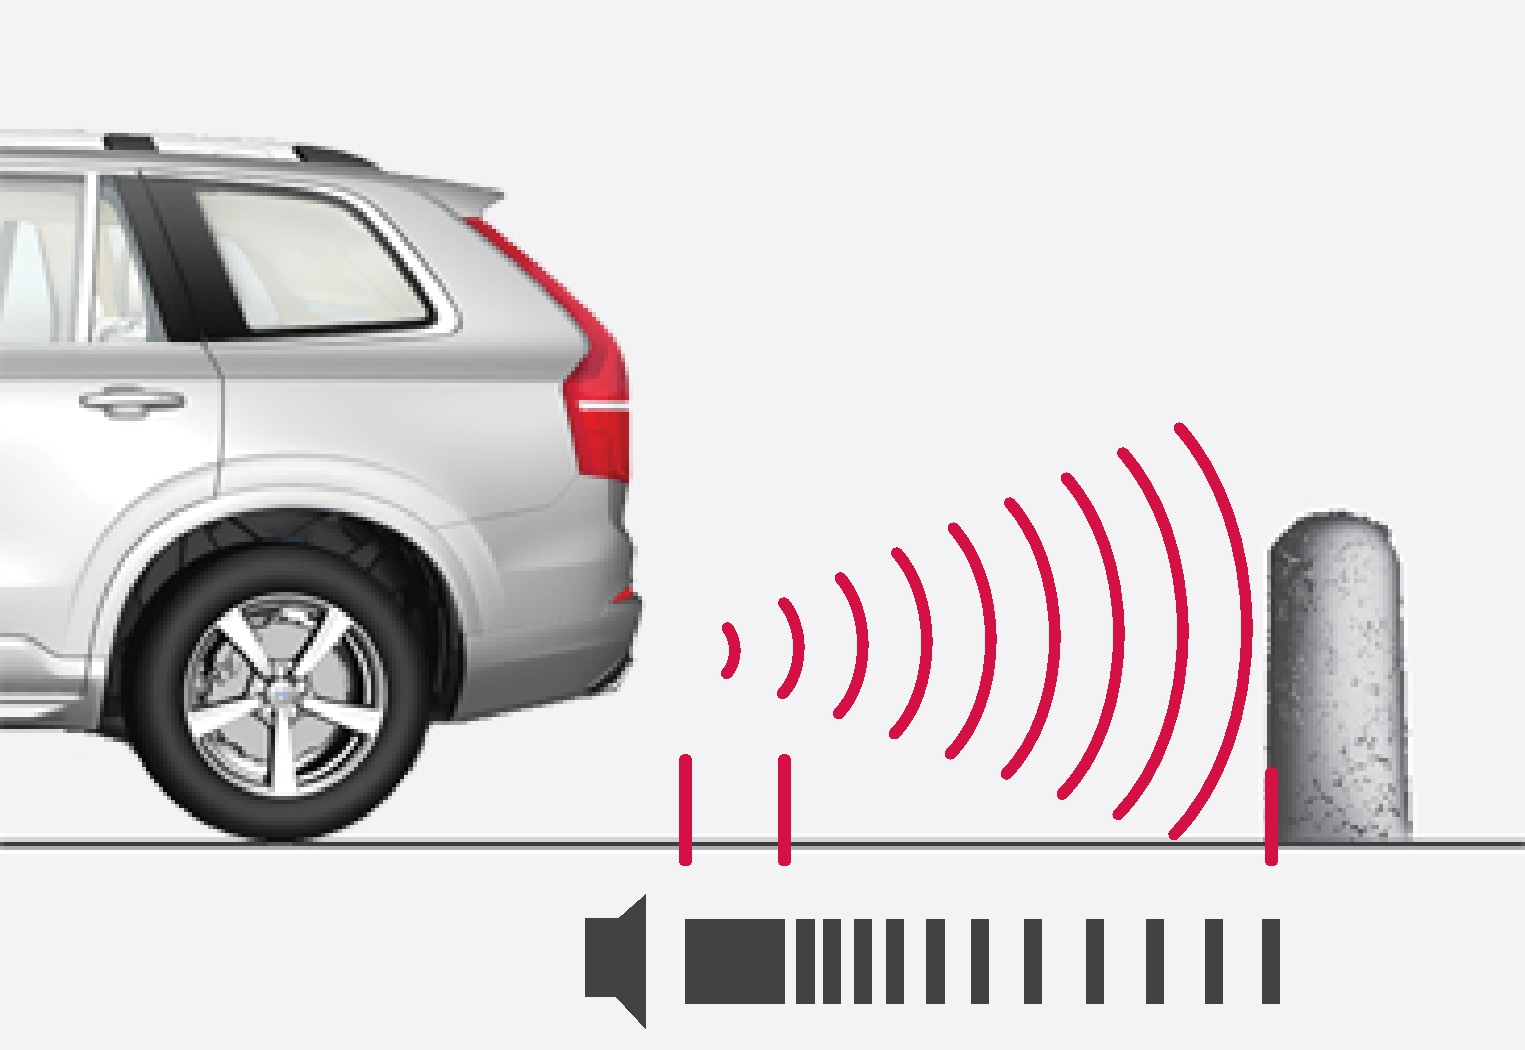 P5-1507-Park Assist, warning signal rear